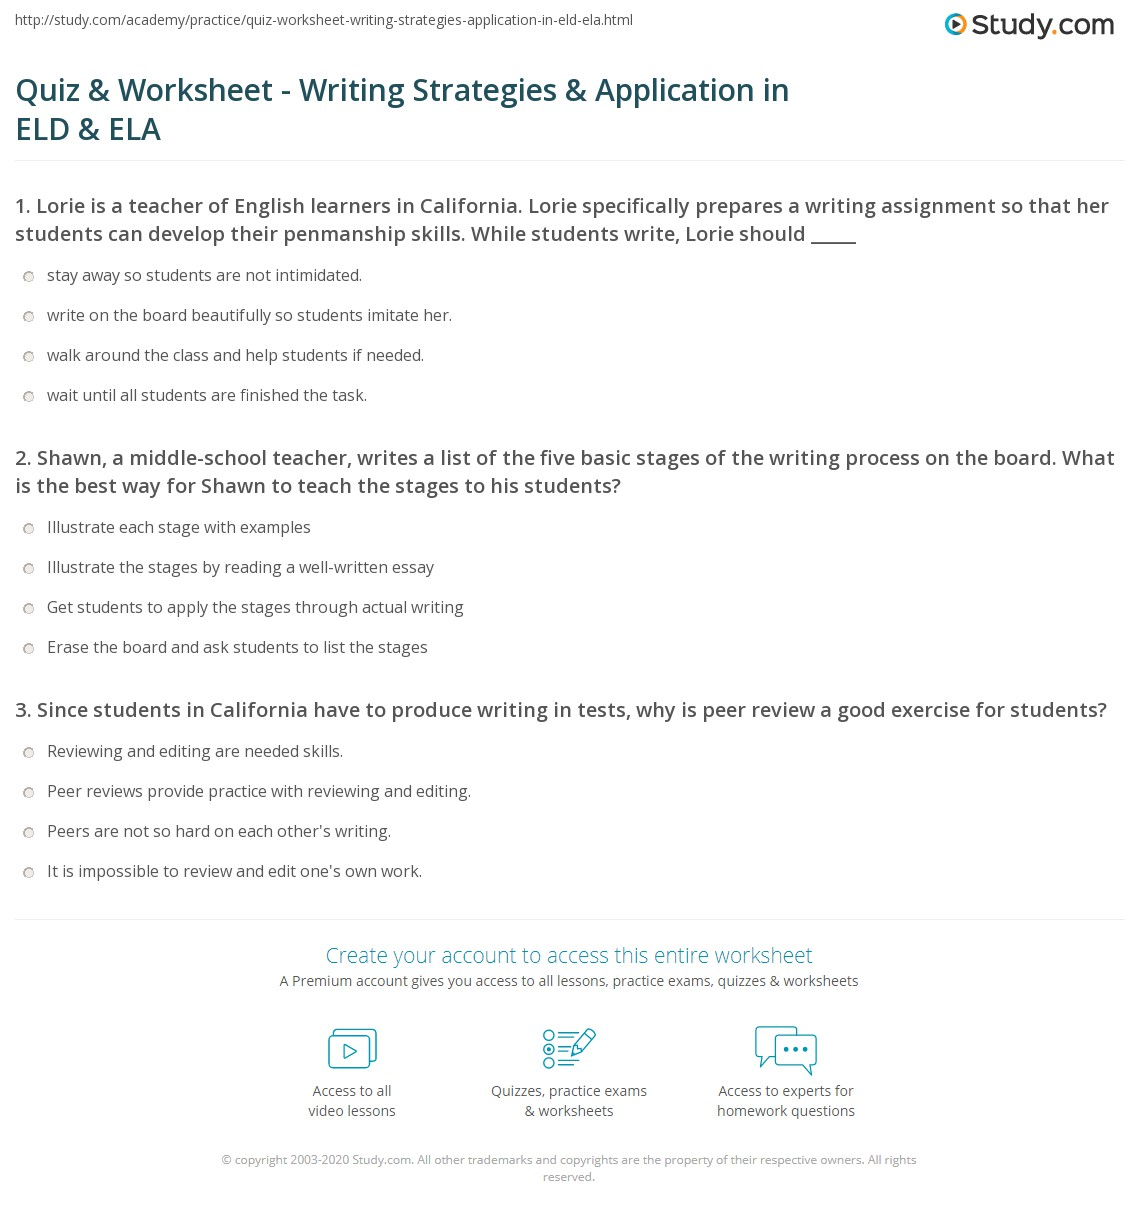 Quiz & Worksheet - Writing Strategies & Application in ELD & ELA ...